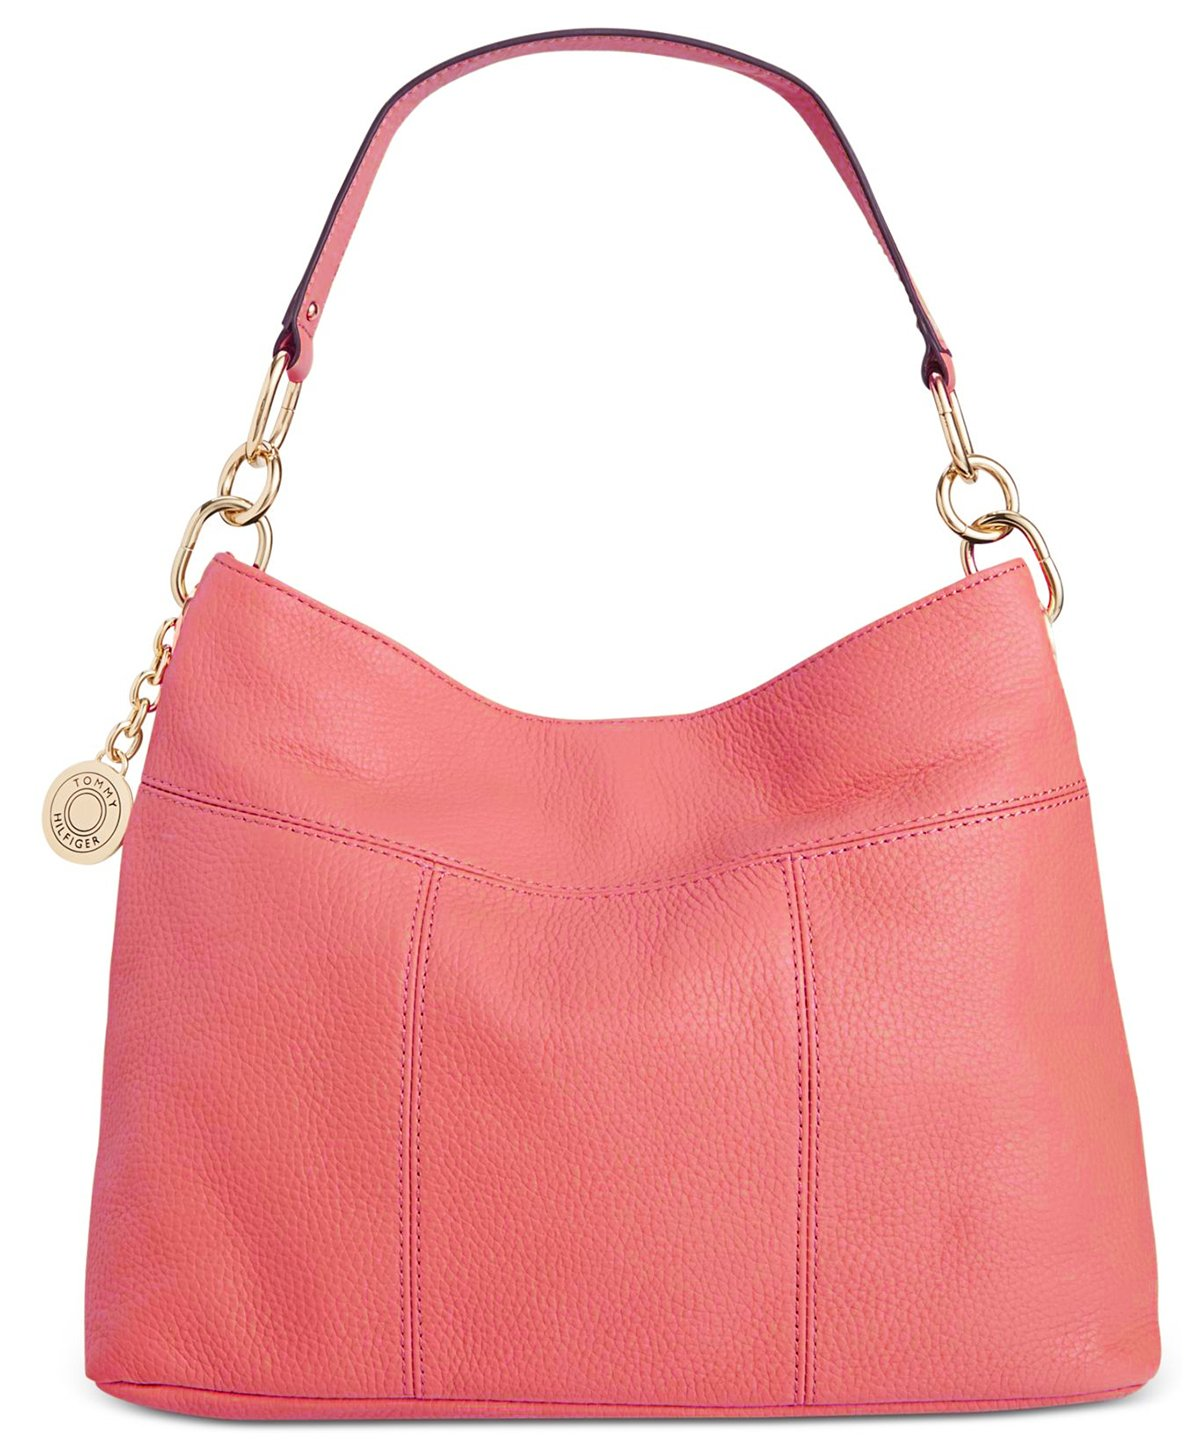 Tommy Hilfiger Th Signature Leather Small Hobo, Dusty Rose